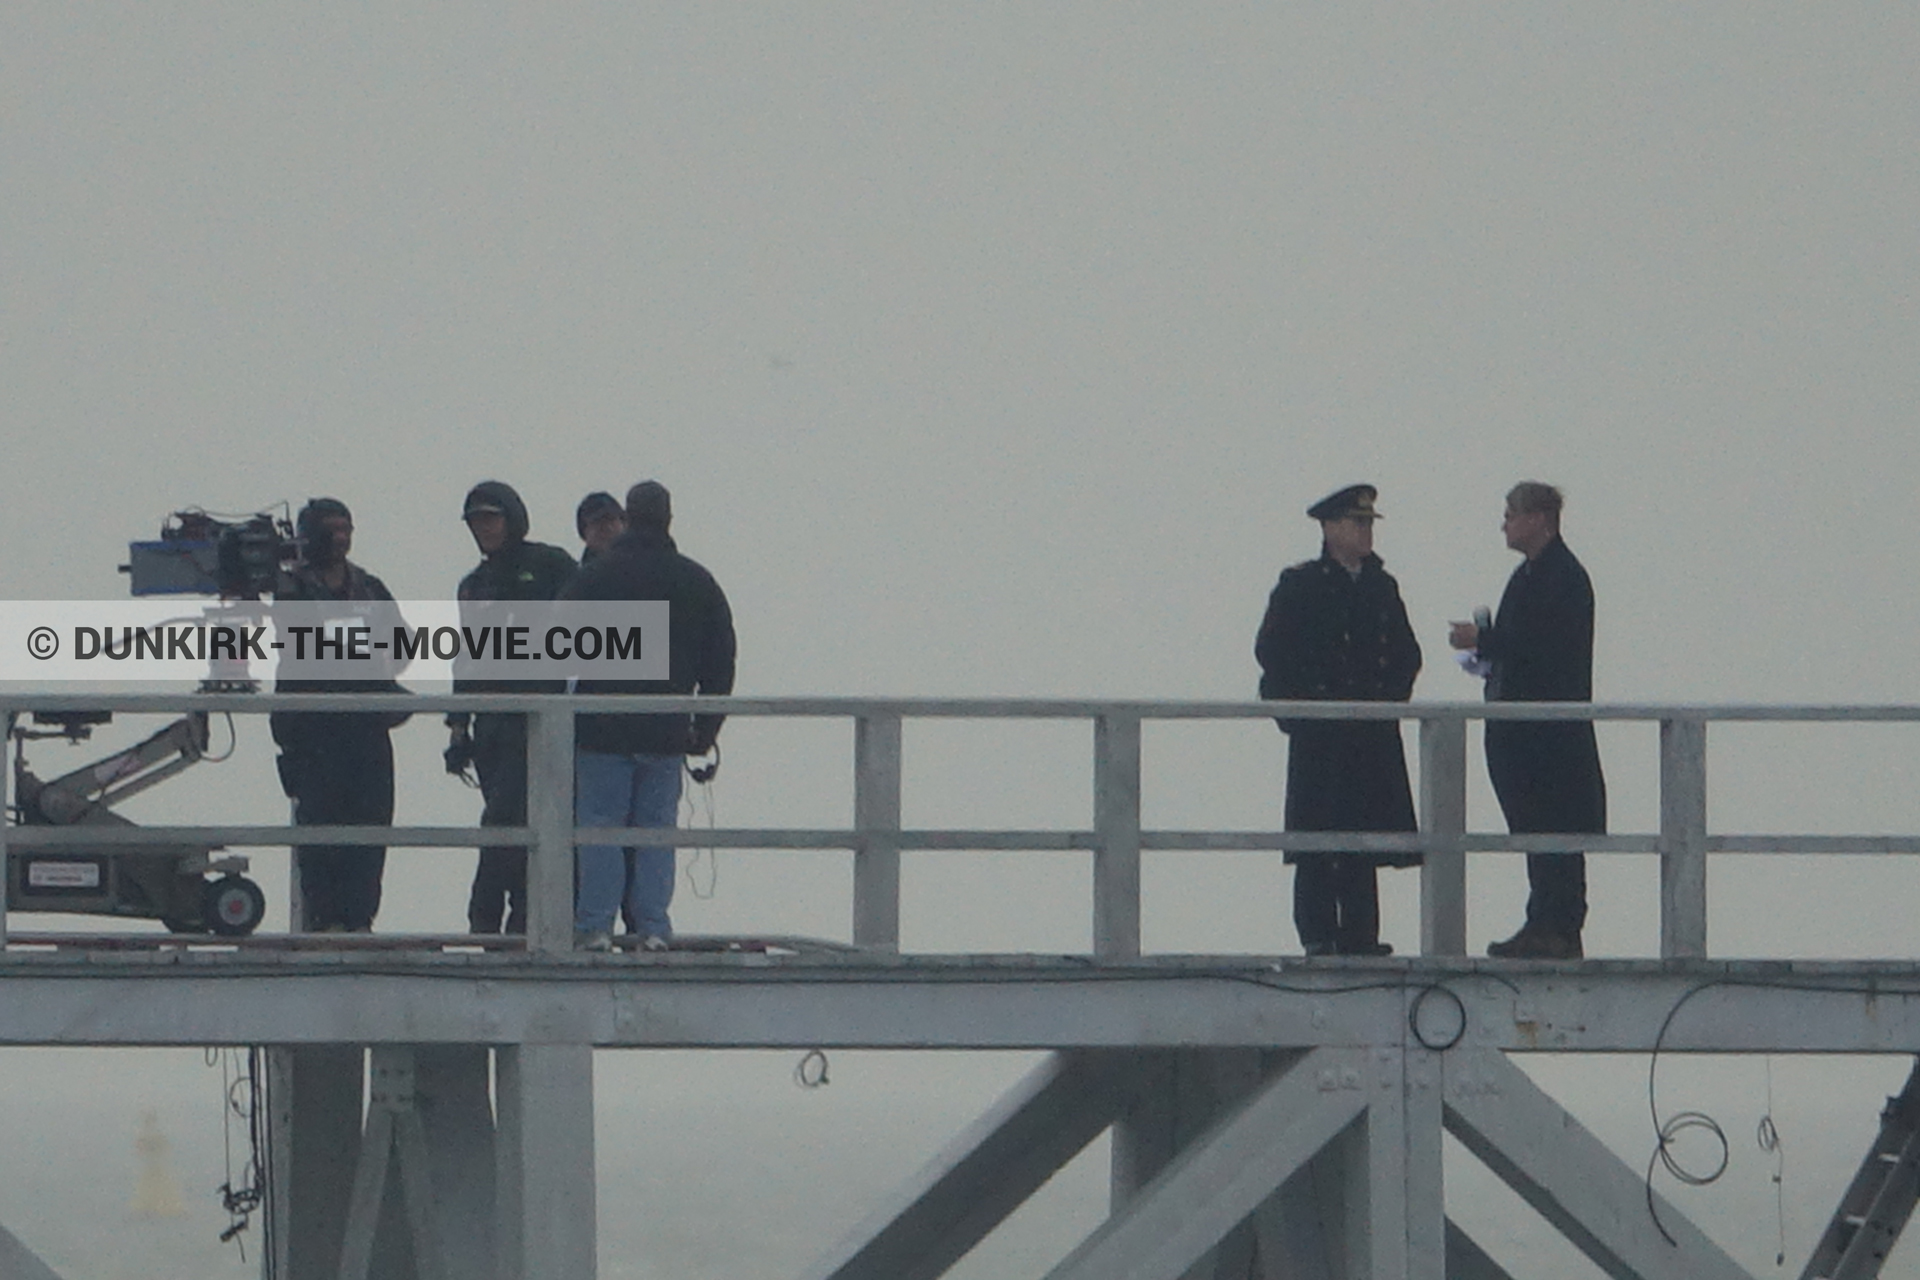 Photo on canvas number 236, of the filming of the film Dunkirk